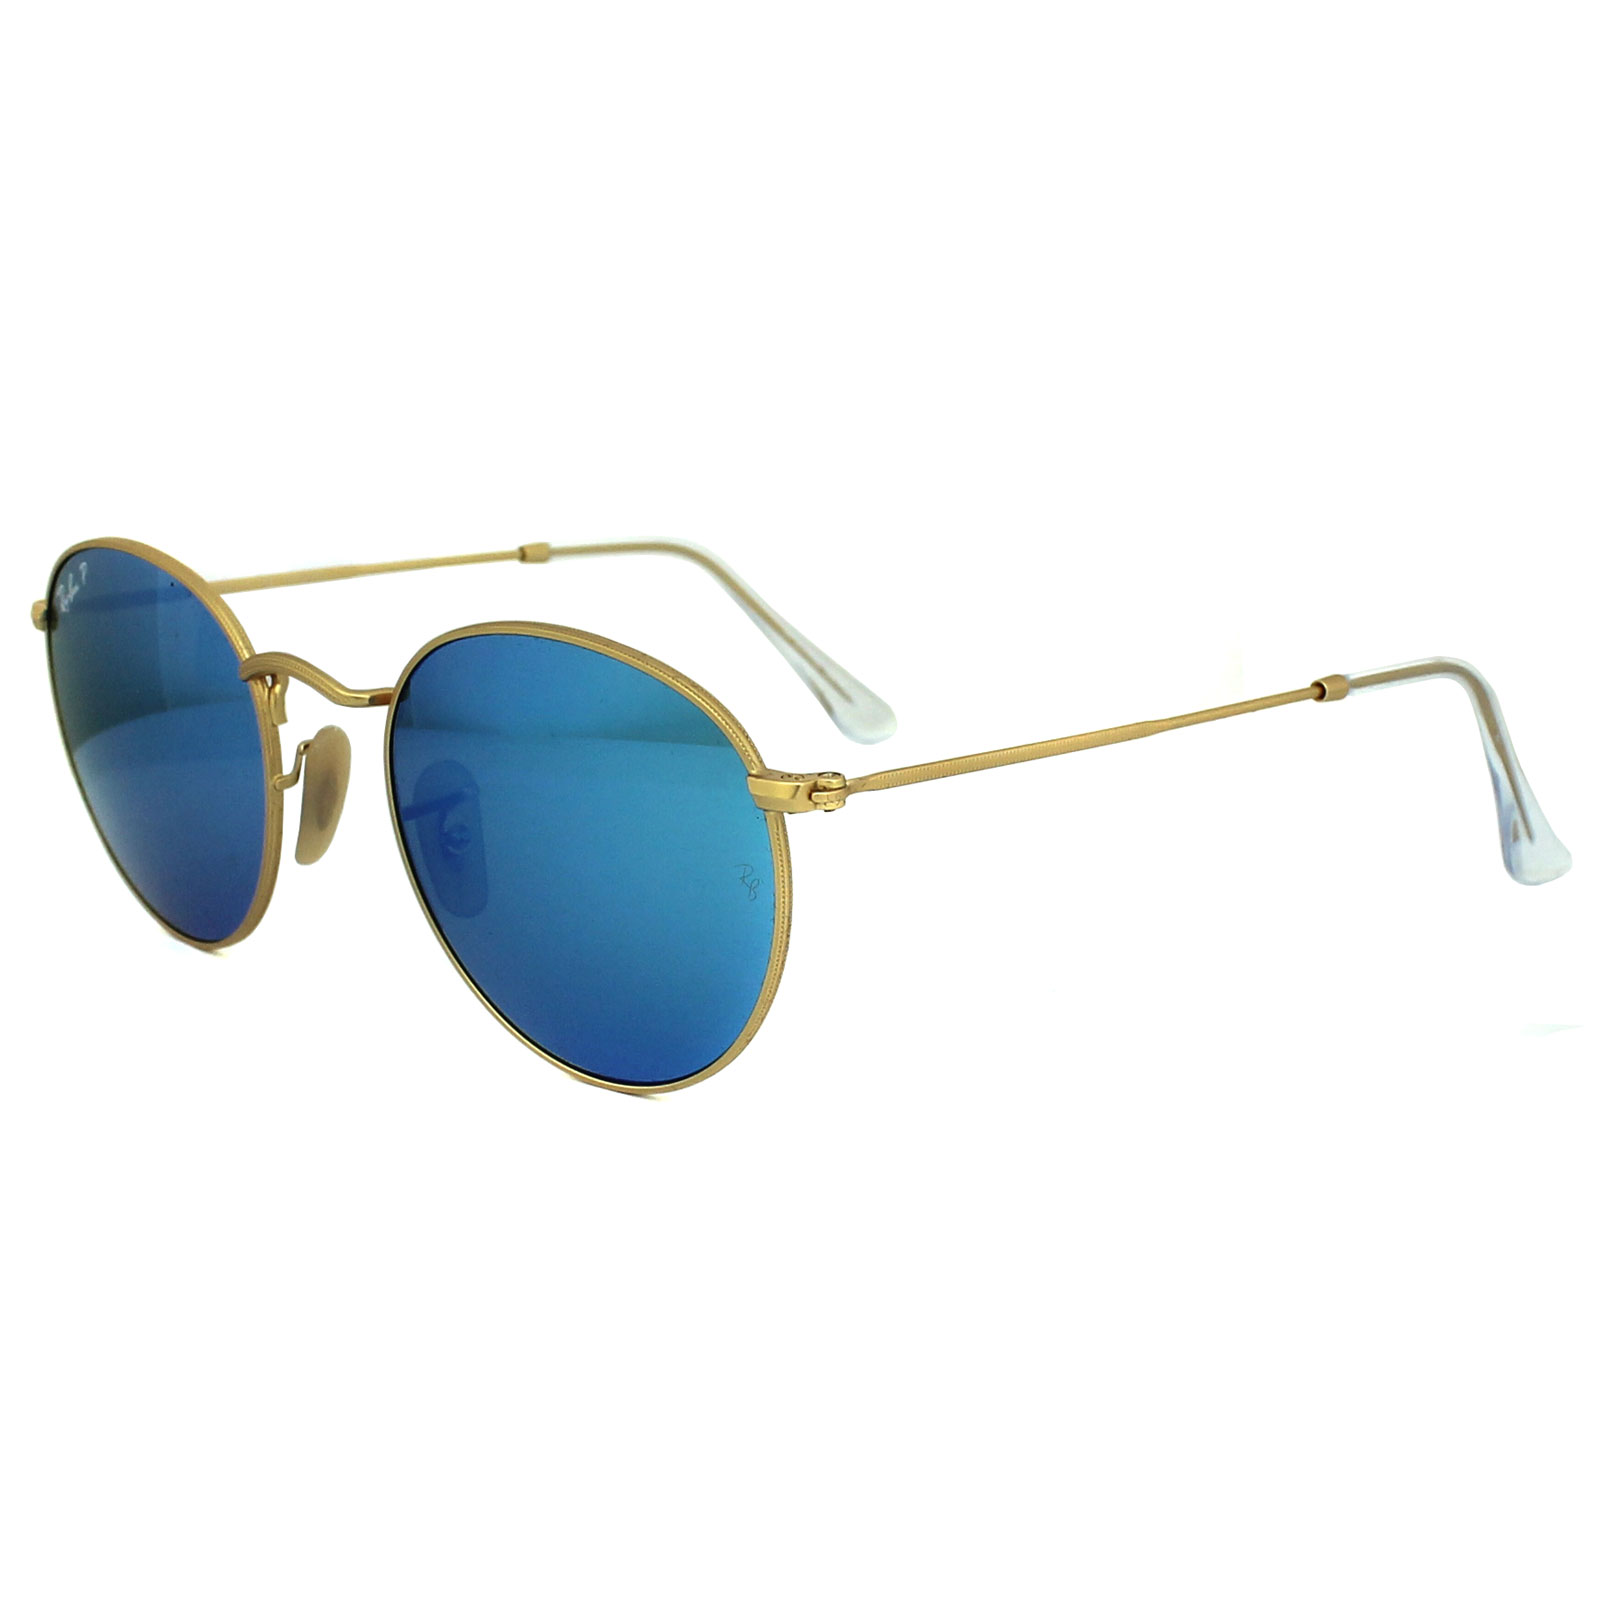 6bdfb4d2cf Details about Ray-Ban Sunglasses Round Metal 3447 112 4L Gold Blue Polarized  Flash Mirror M